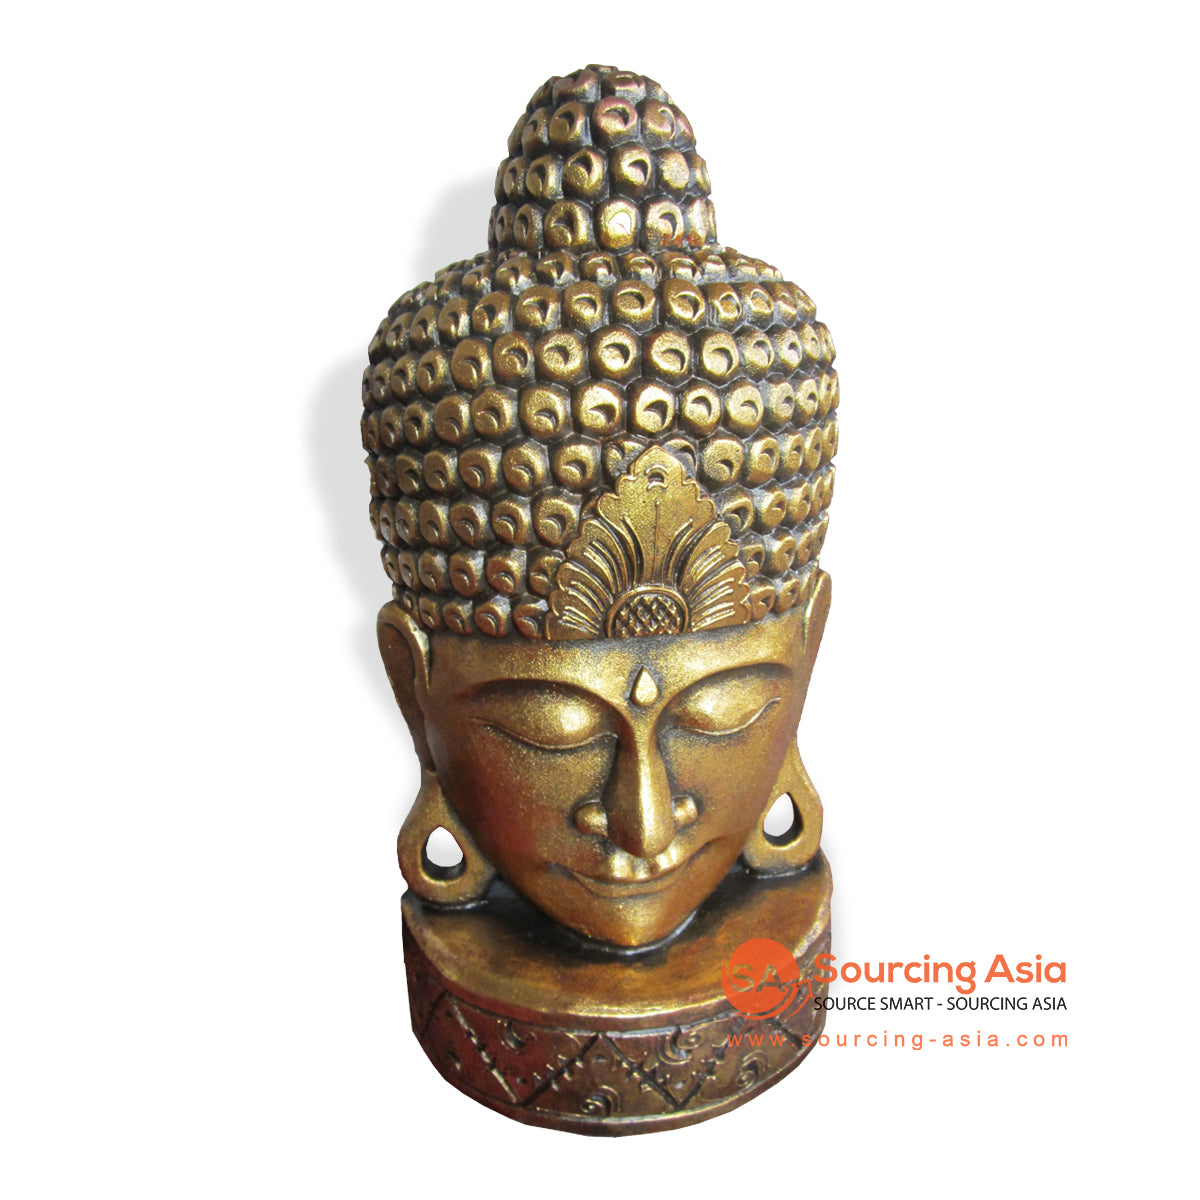 ISUL124 GOLD BUDDHA HEAD DECORATION